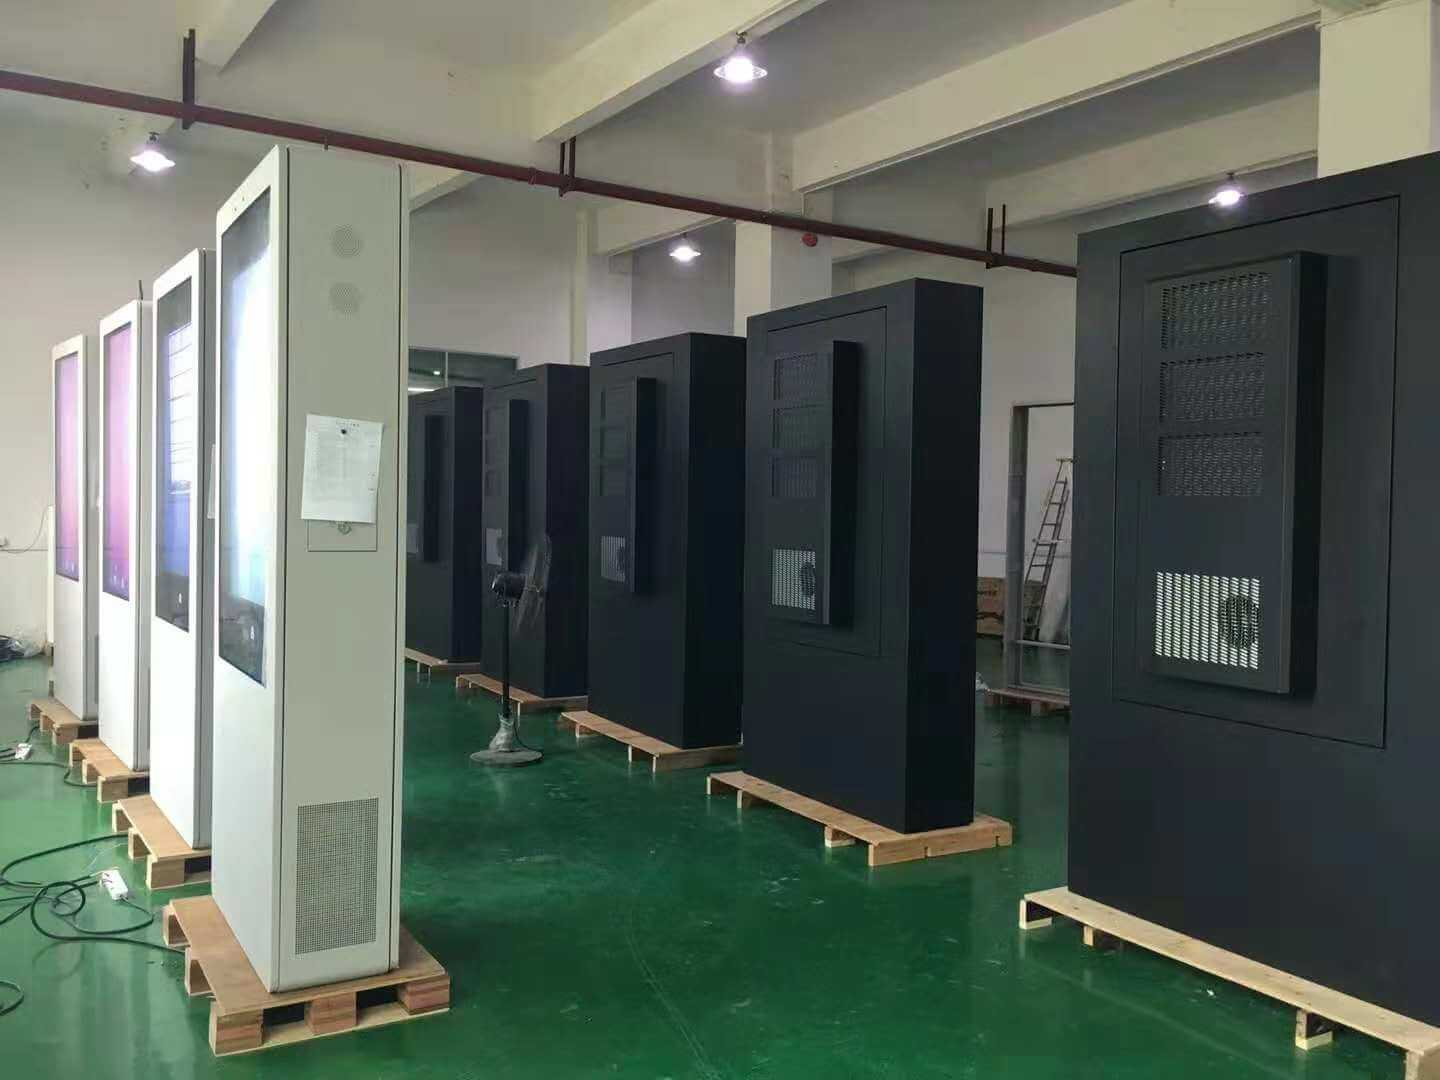 China Industrial air-conditioning - cabinet air conditioning.